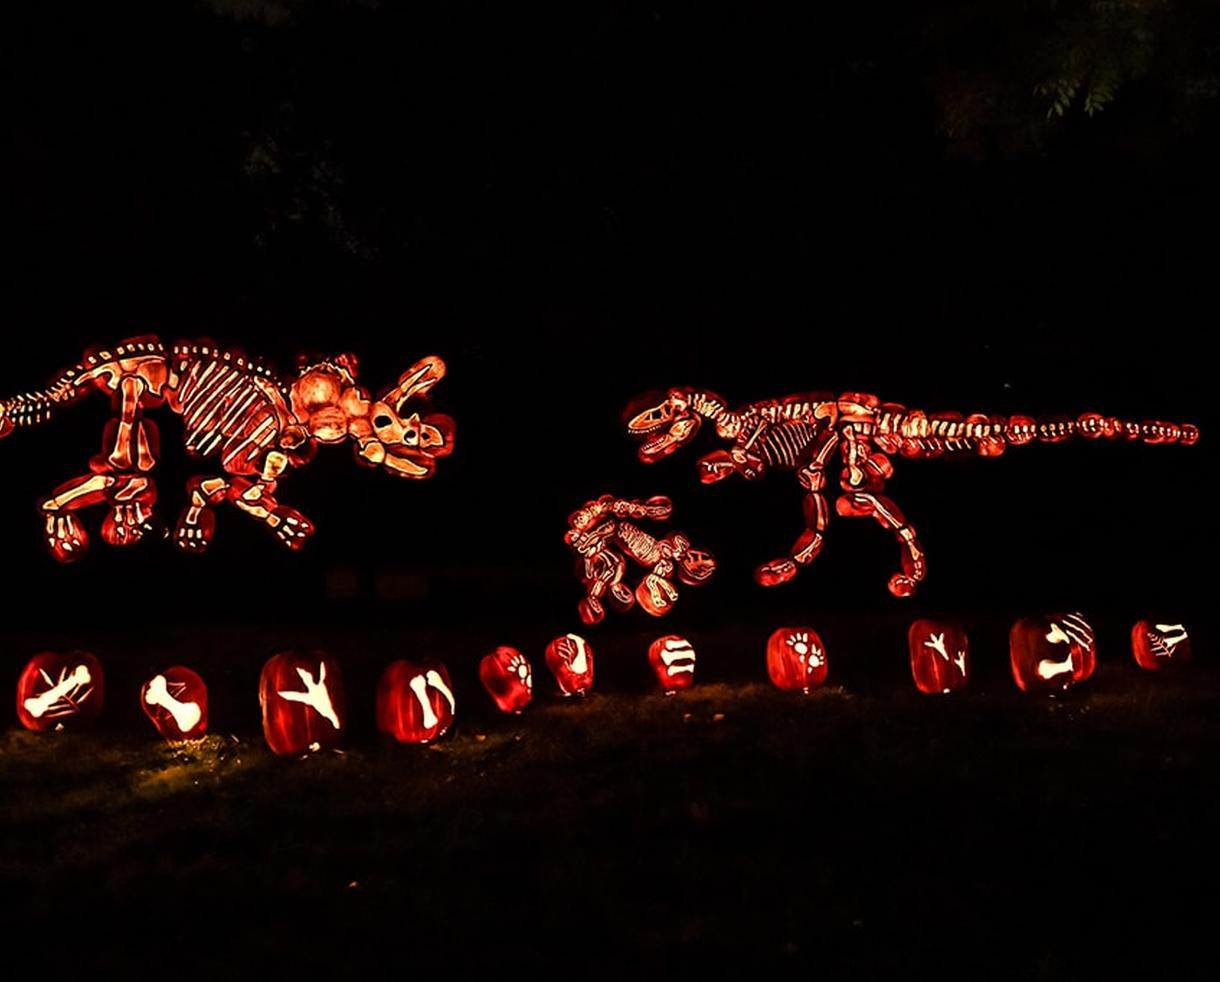 The GLOW: A Pumpkin Wonderland in Reston, Virginia